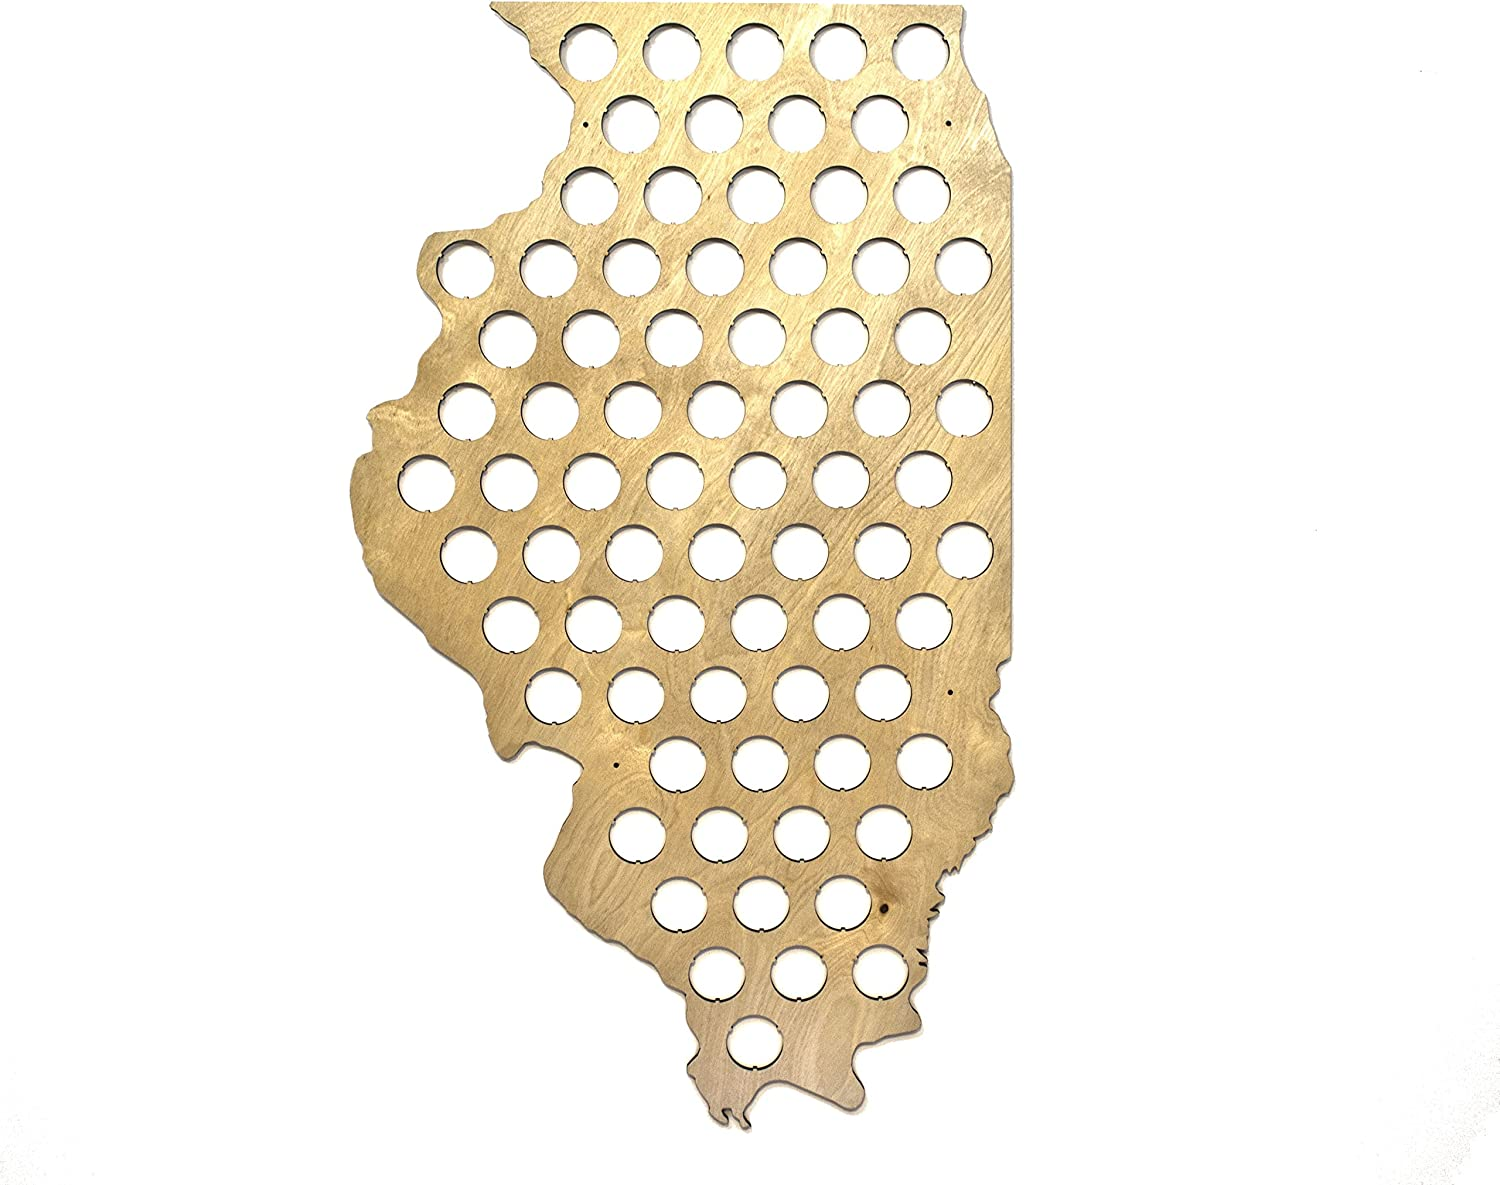 All 50 States Beer Cap Map - Illinois Beer Cap Map IL - Glossy Wood - Skyline Workshop - Great Christmas gift!